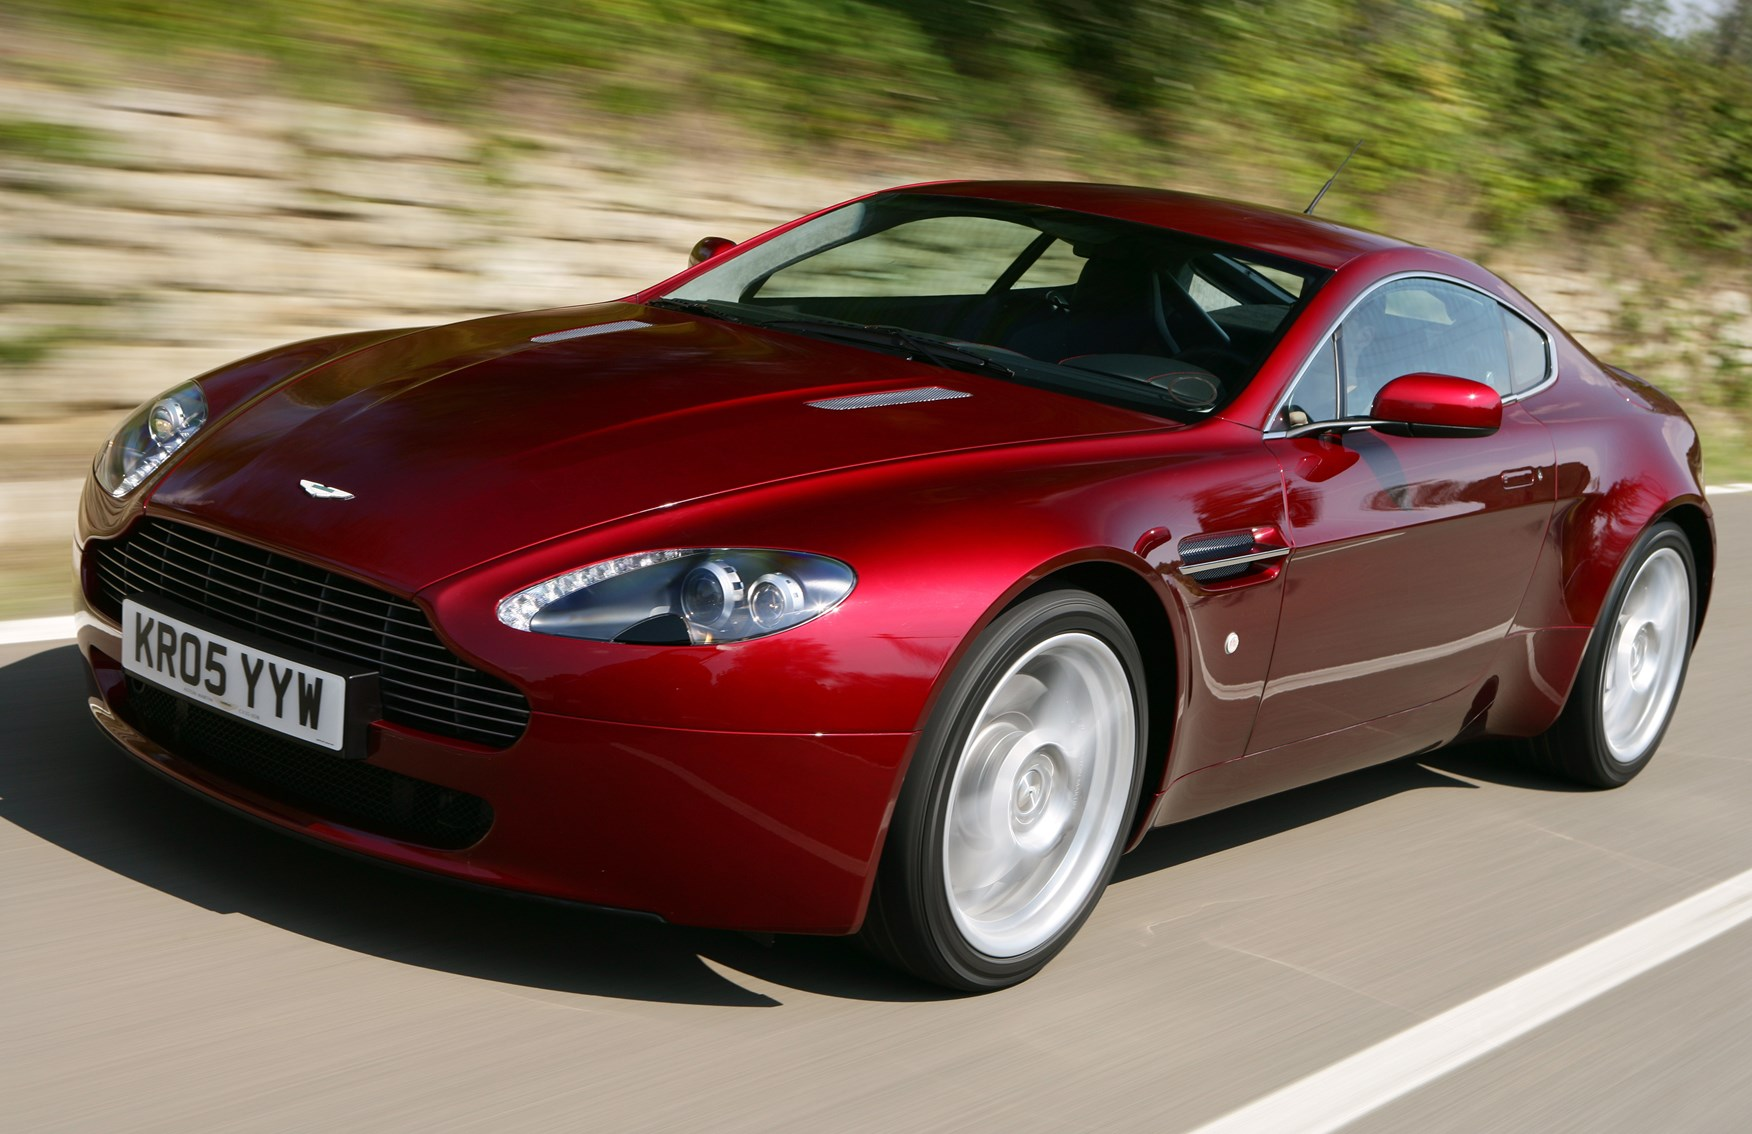 Used Aston Martin Vantage Coupe 2005 2018 Review Parkers